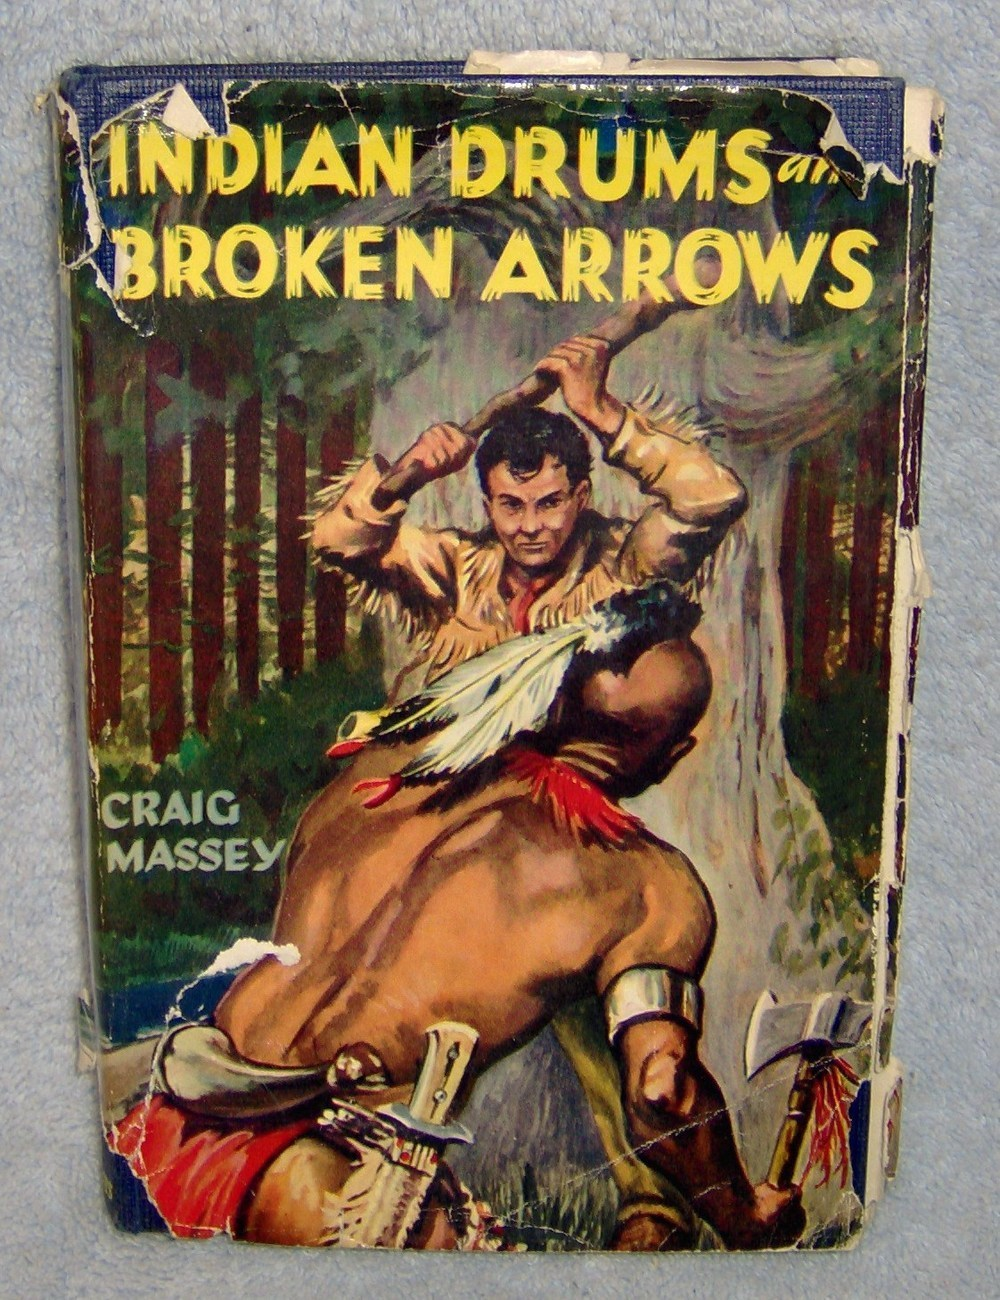 Indian_drums_and_broken_arrows